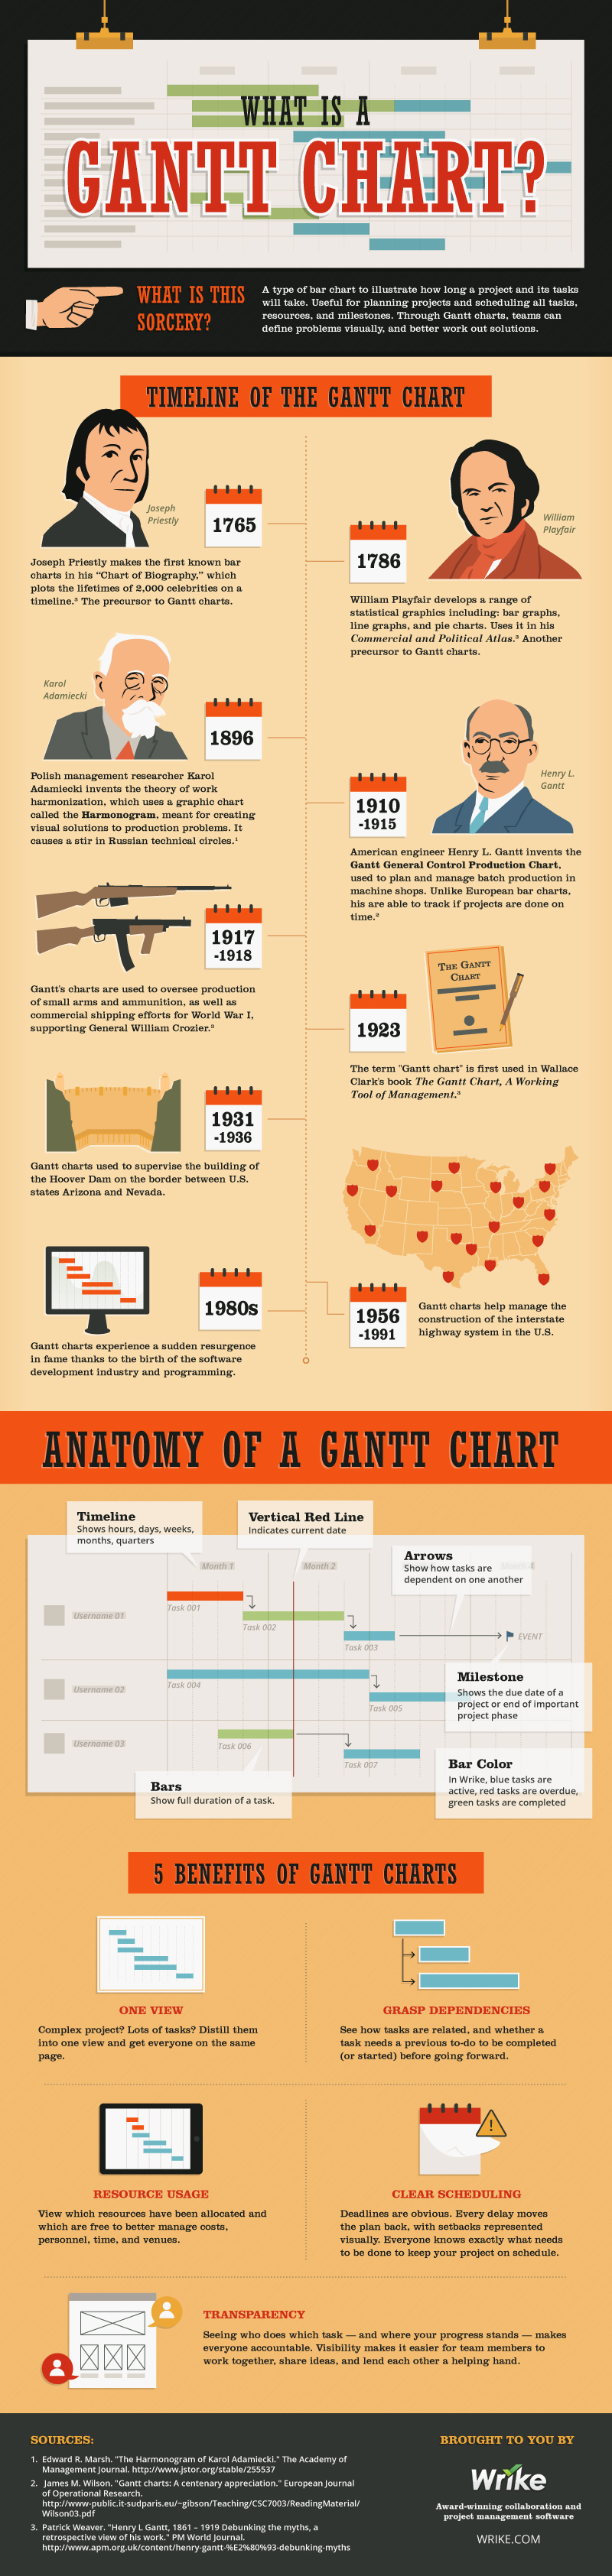 What is a Gantt Chart? #infographic